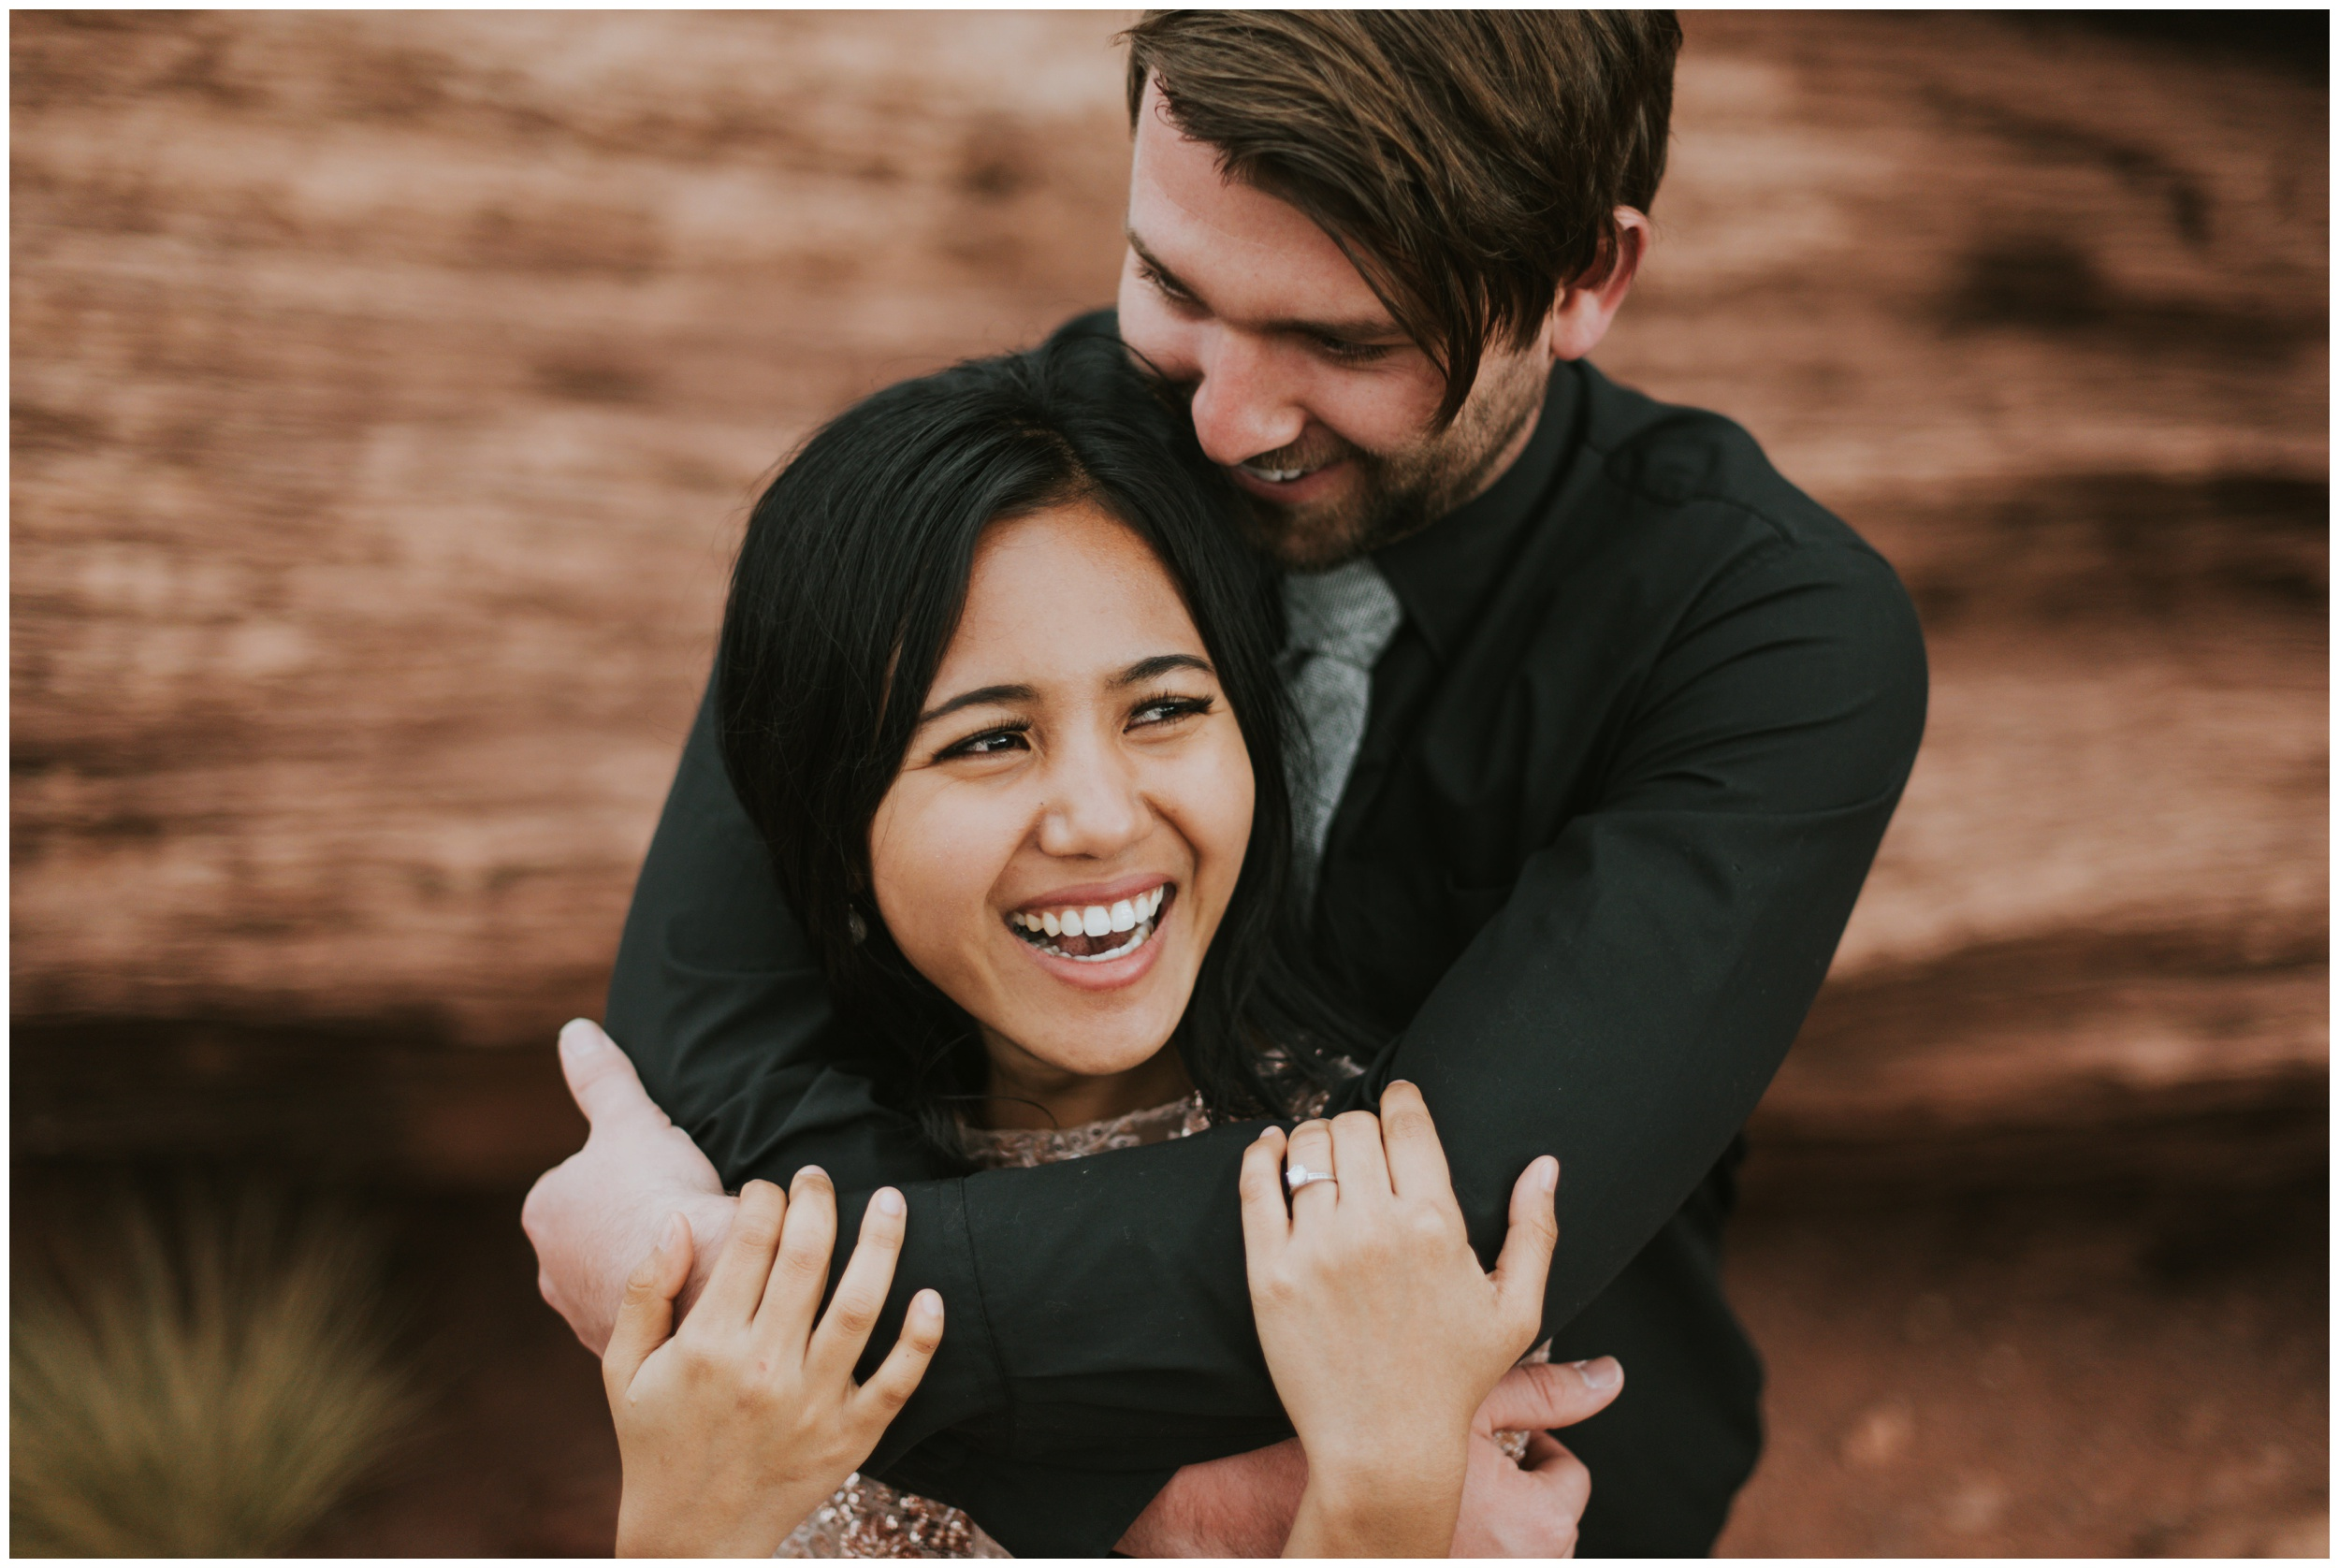 Close up photo of beautiful bride smiling with her groom wrapped around her | Elopement Photographer www.riversandroadsphotography.com